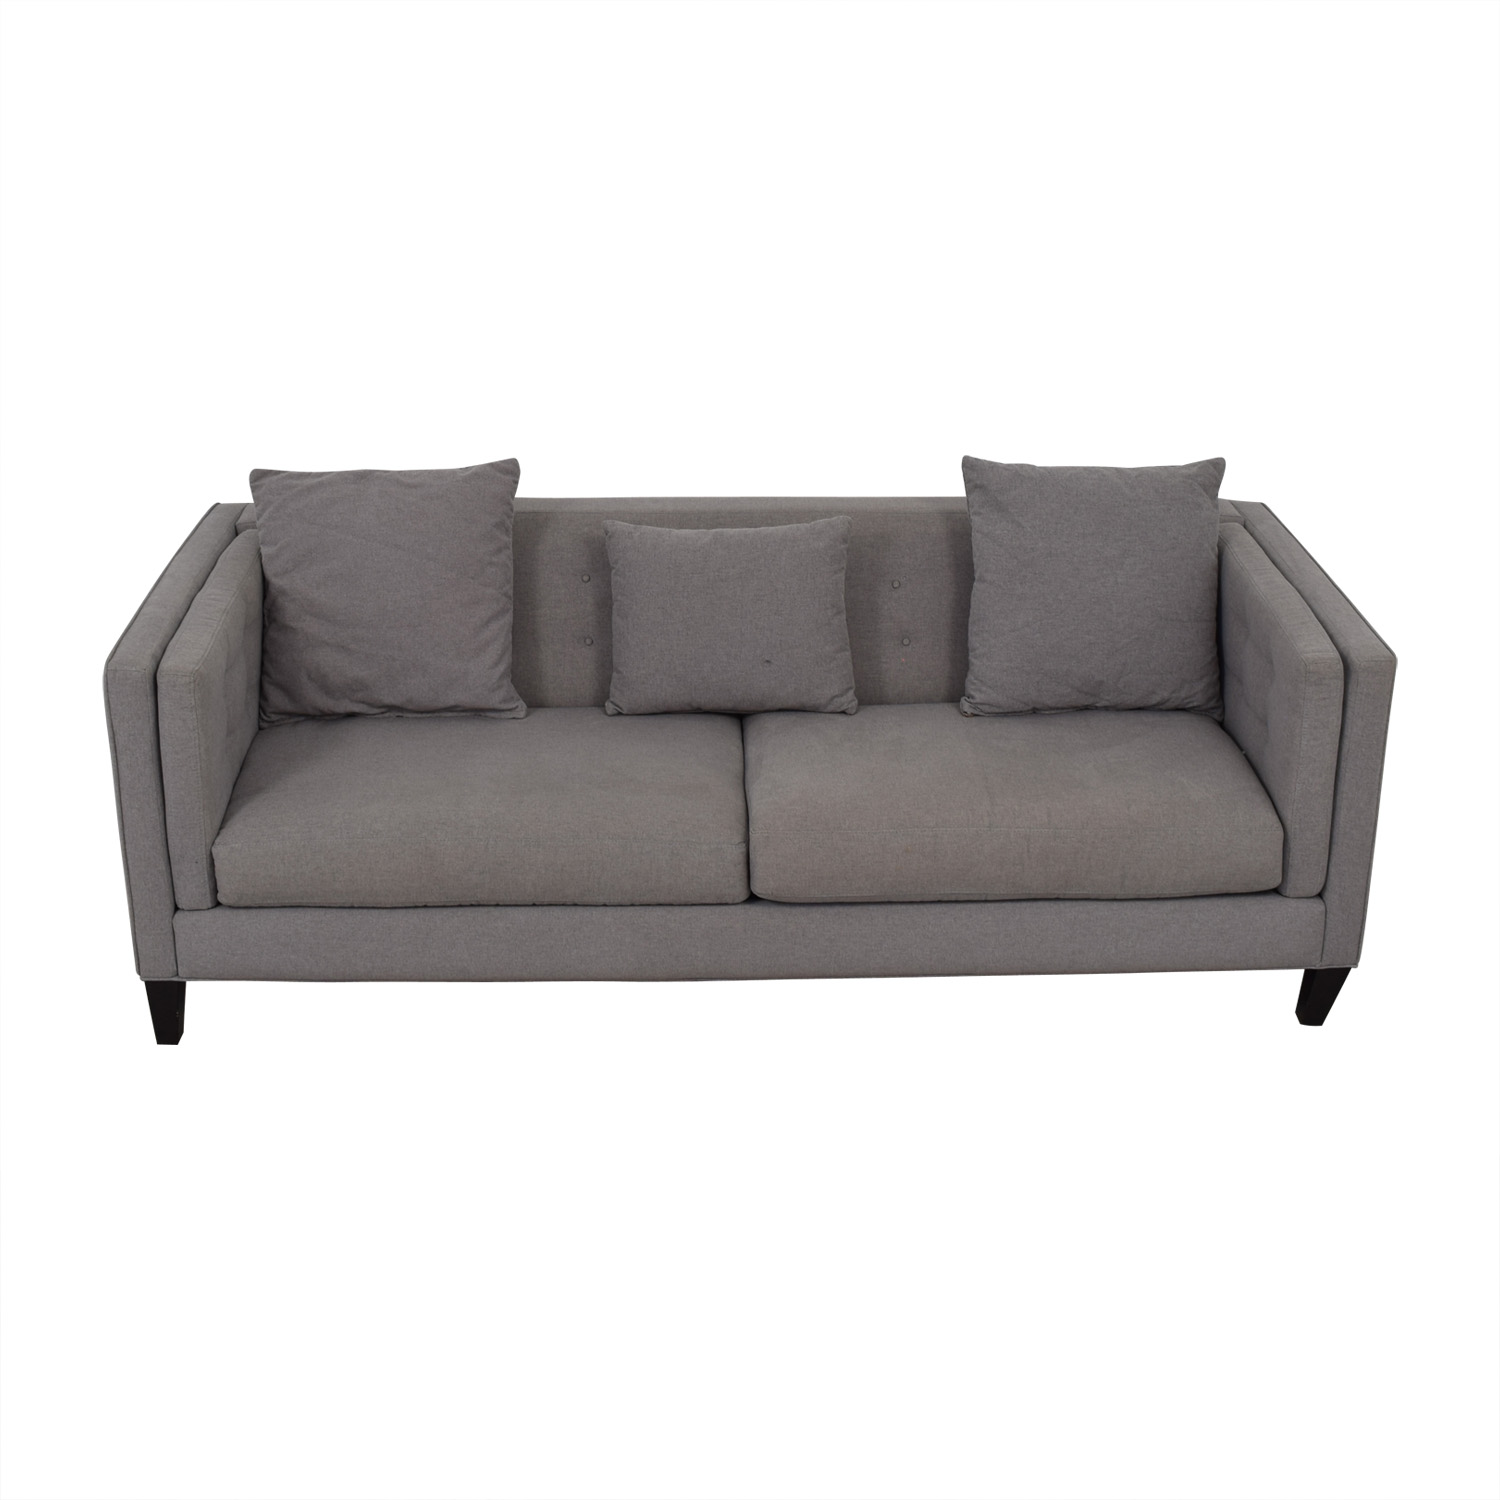 Jonathan Lewis Jonathan Lewis Grey Two-Cushion Couch discount